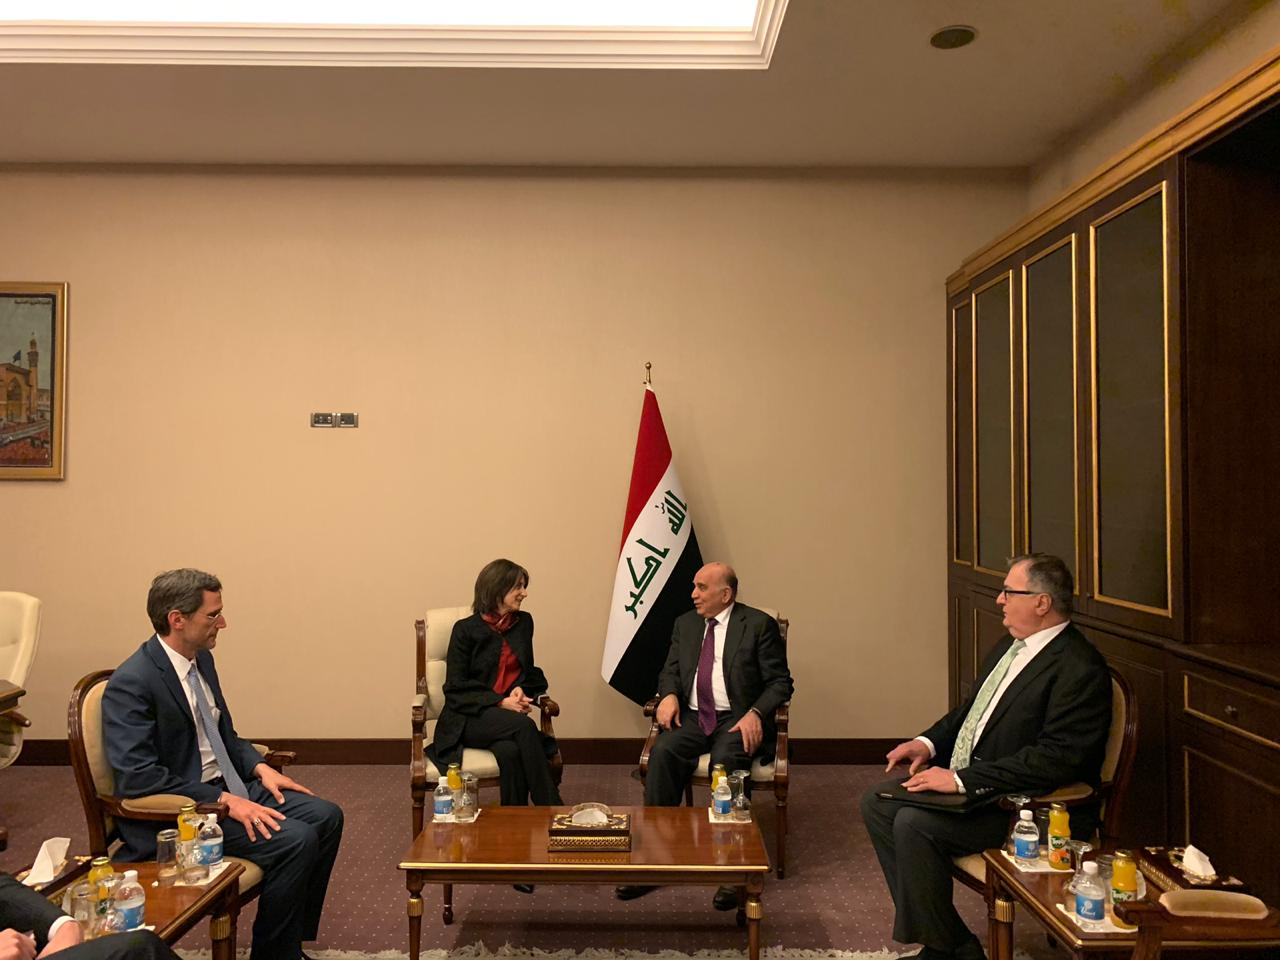 Saleh confirms Iraq's determination to strengthen relations with America WhatsApp%20Image%202019-03-05%20at%2011.00.50%20PM